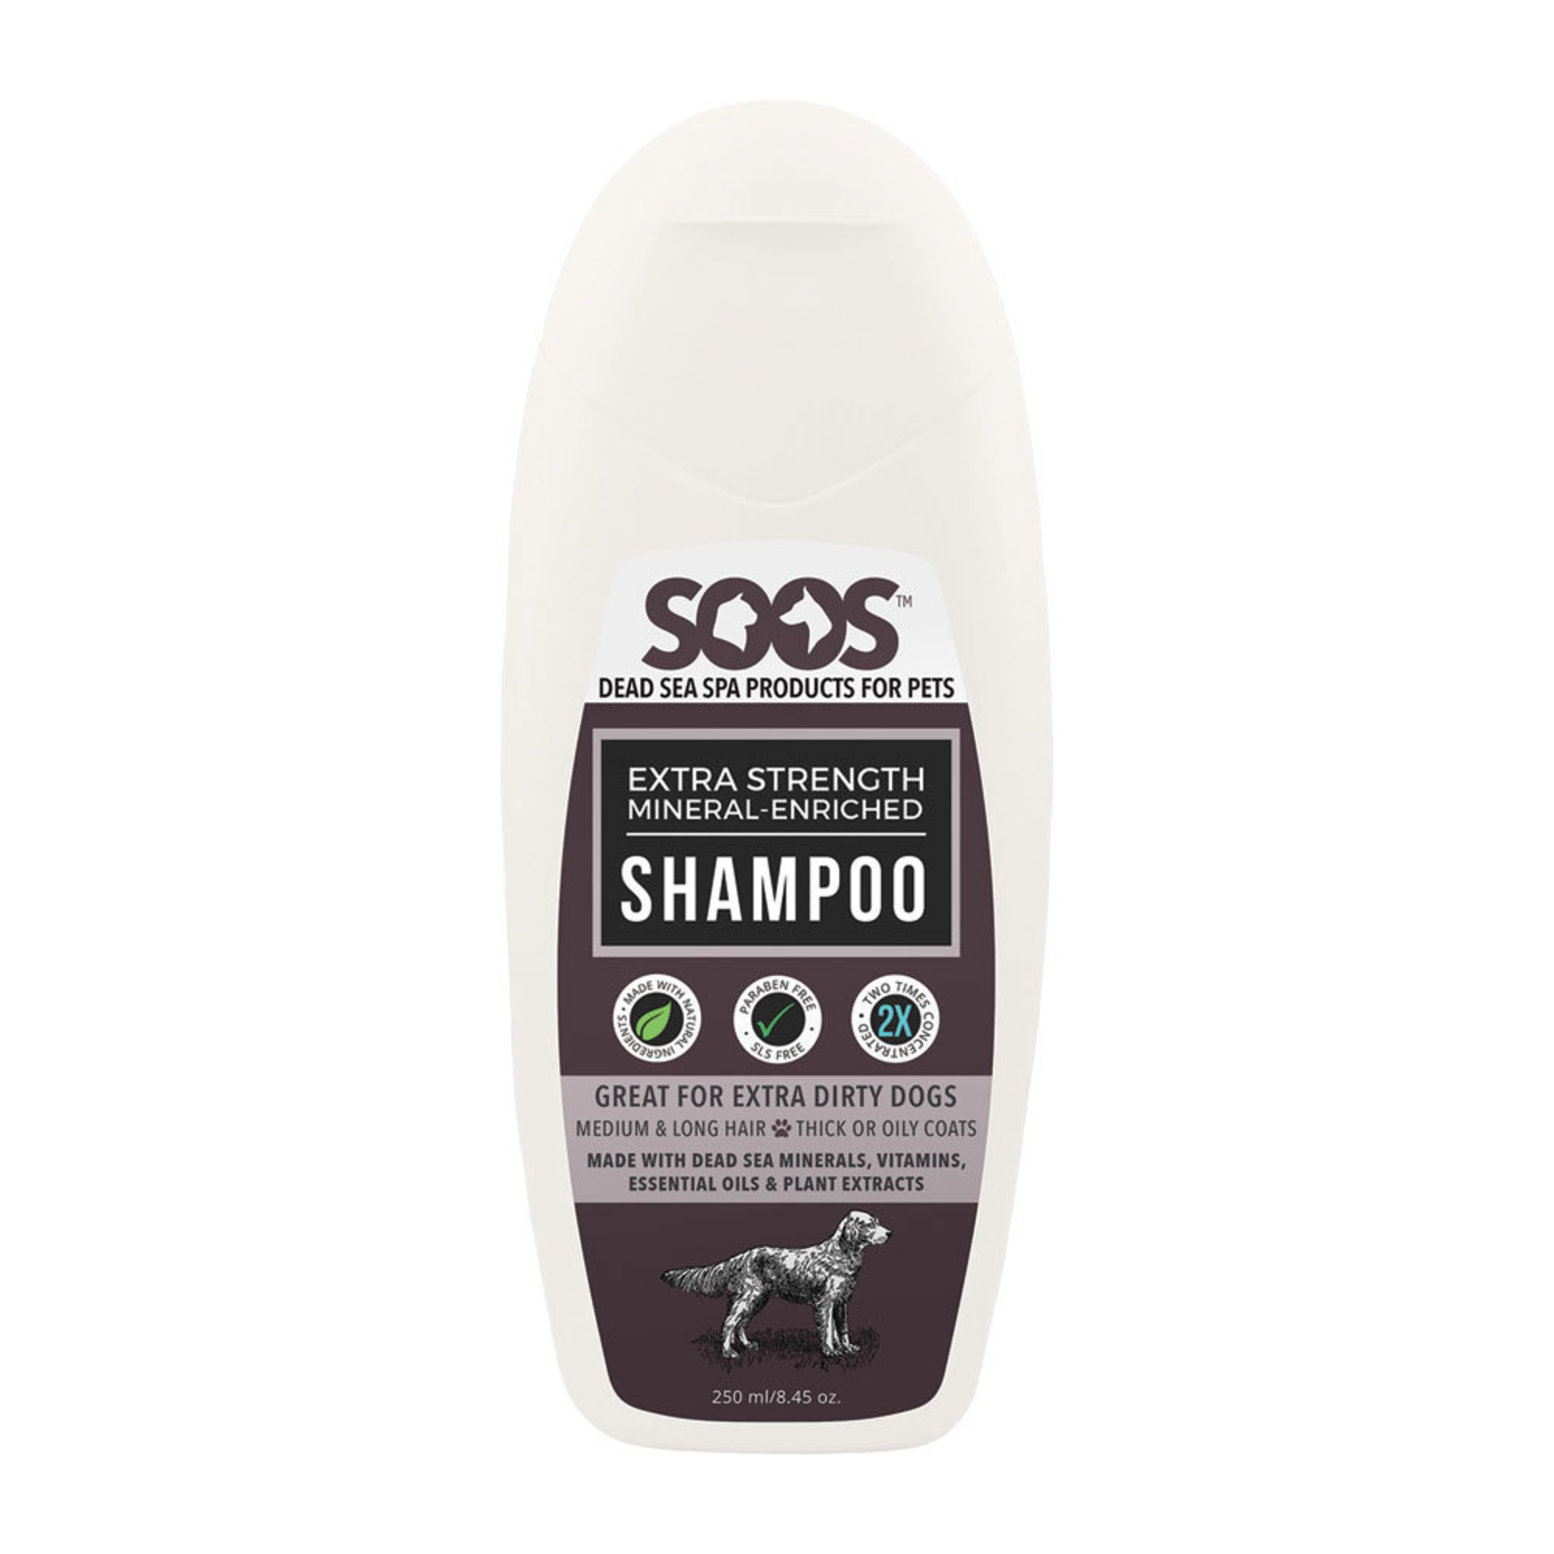 Extra Strength Mineral Enriched Shampoo